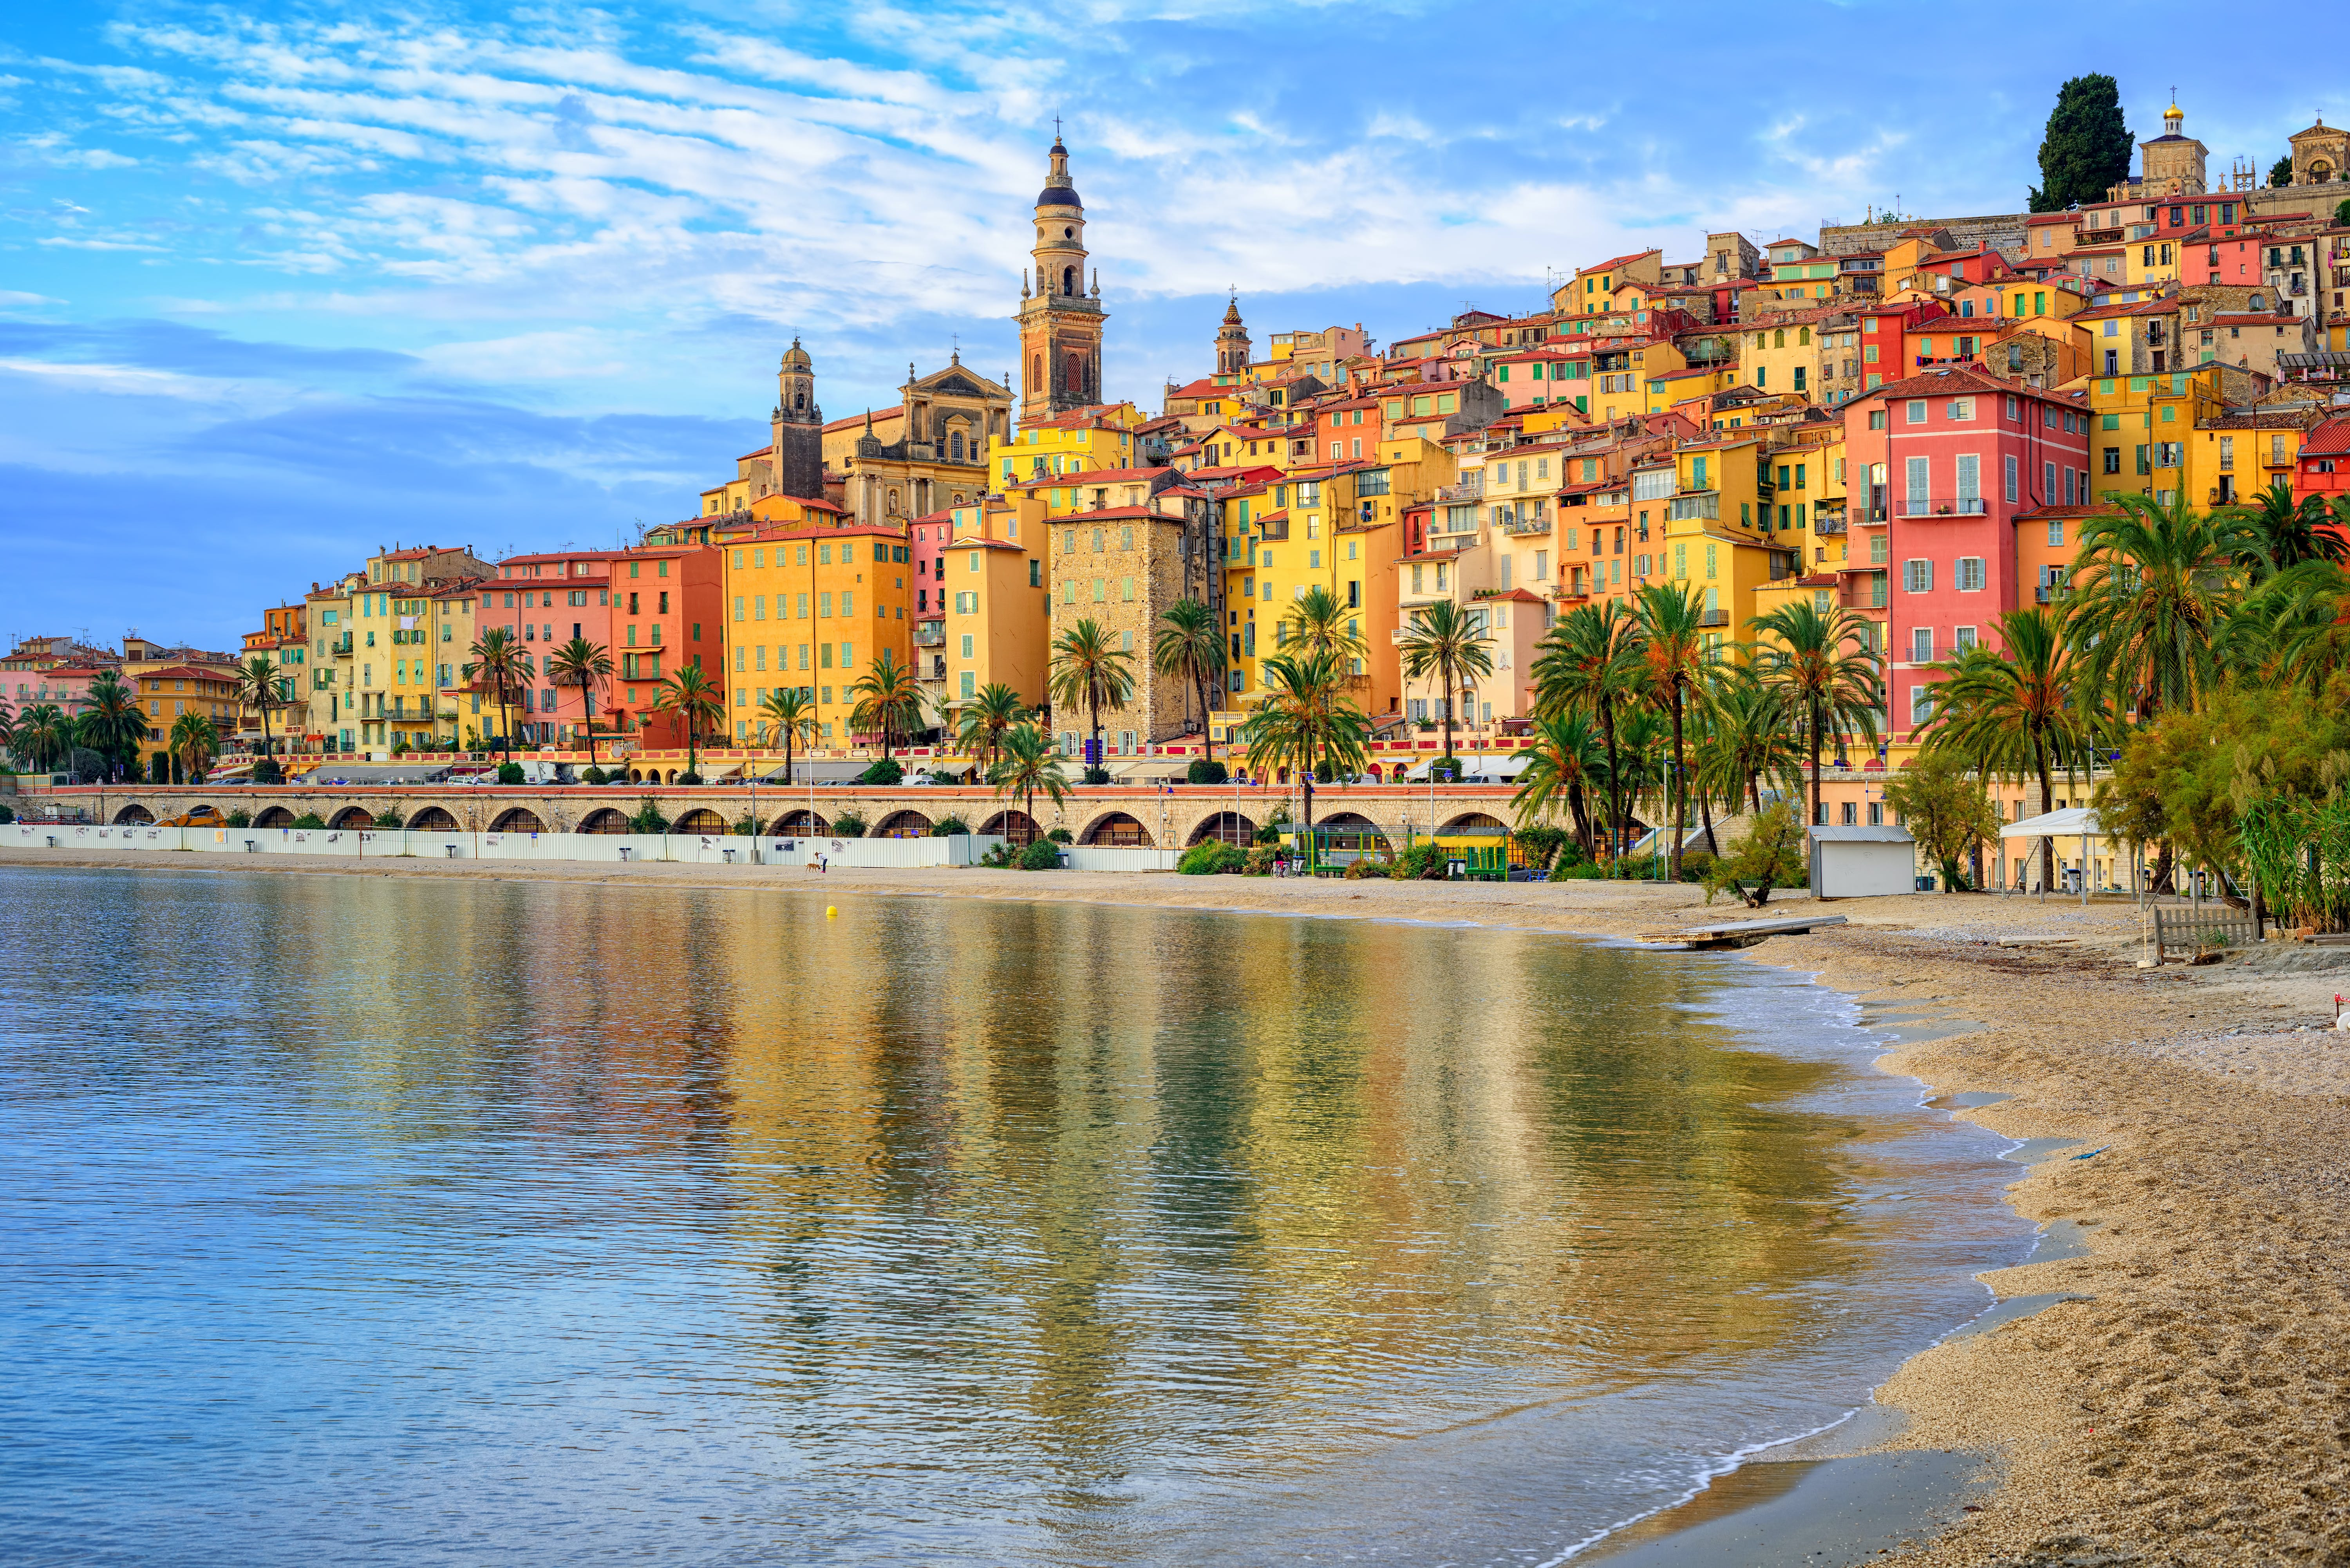 Sand beach beneath the colorful old town Menton in Nice on the French Riviera, France.